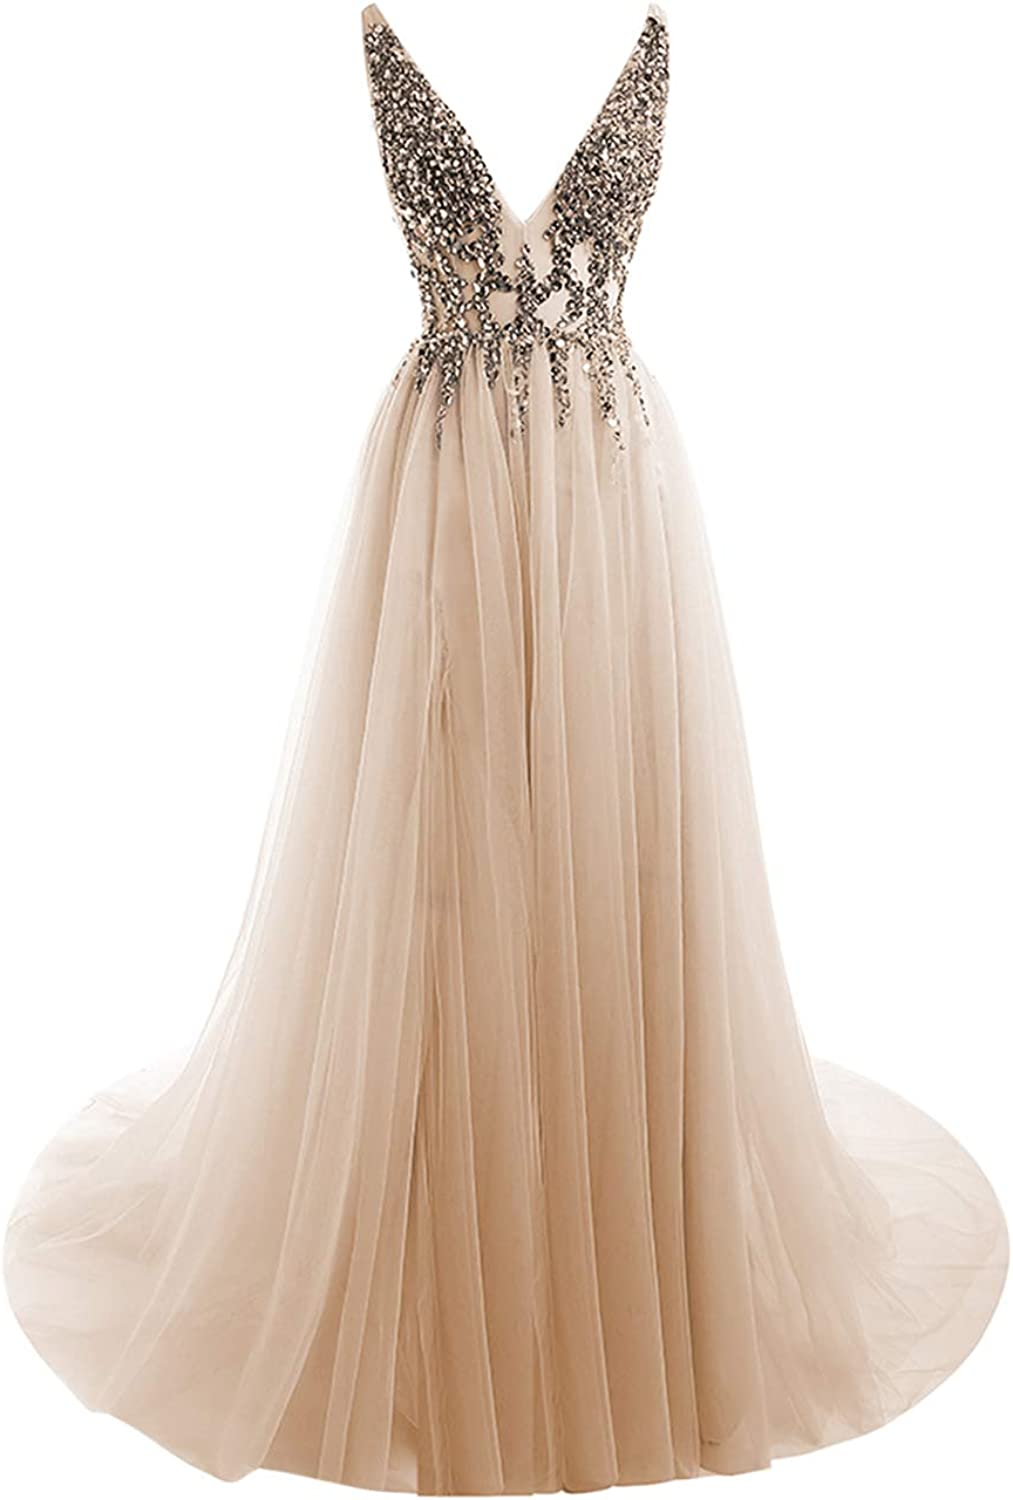 HONGFUYU Evening Dresses 2018 Sexy VNeck Crystal Beading Open Back Long Prom Gowns HFY103ChampagneUS8